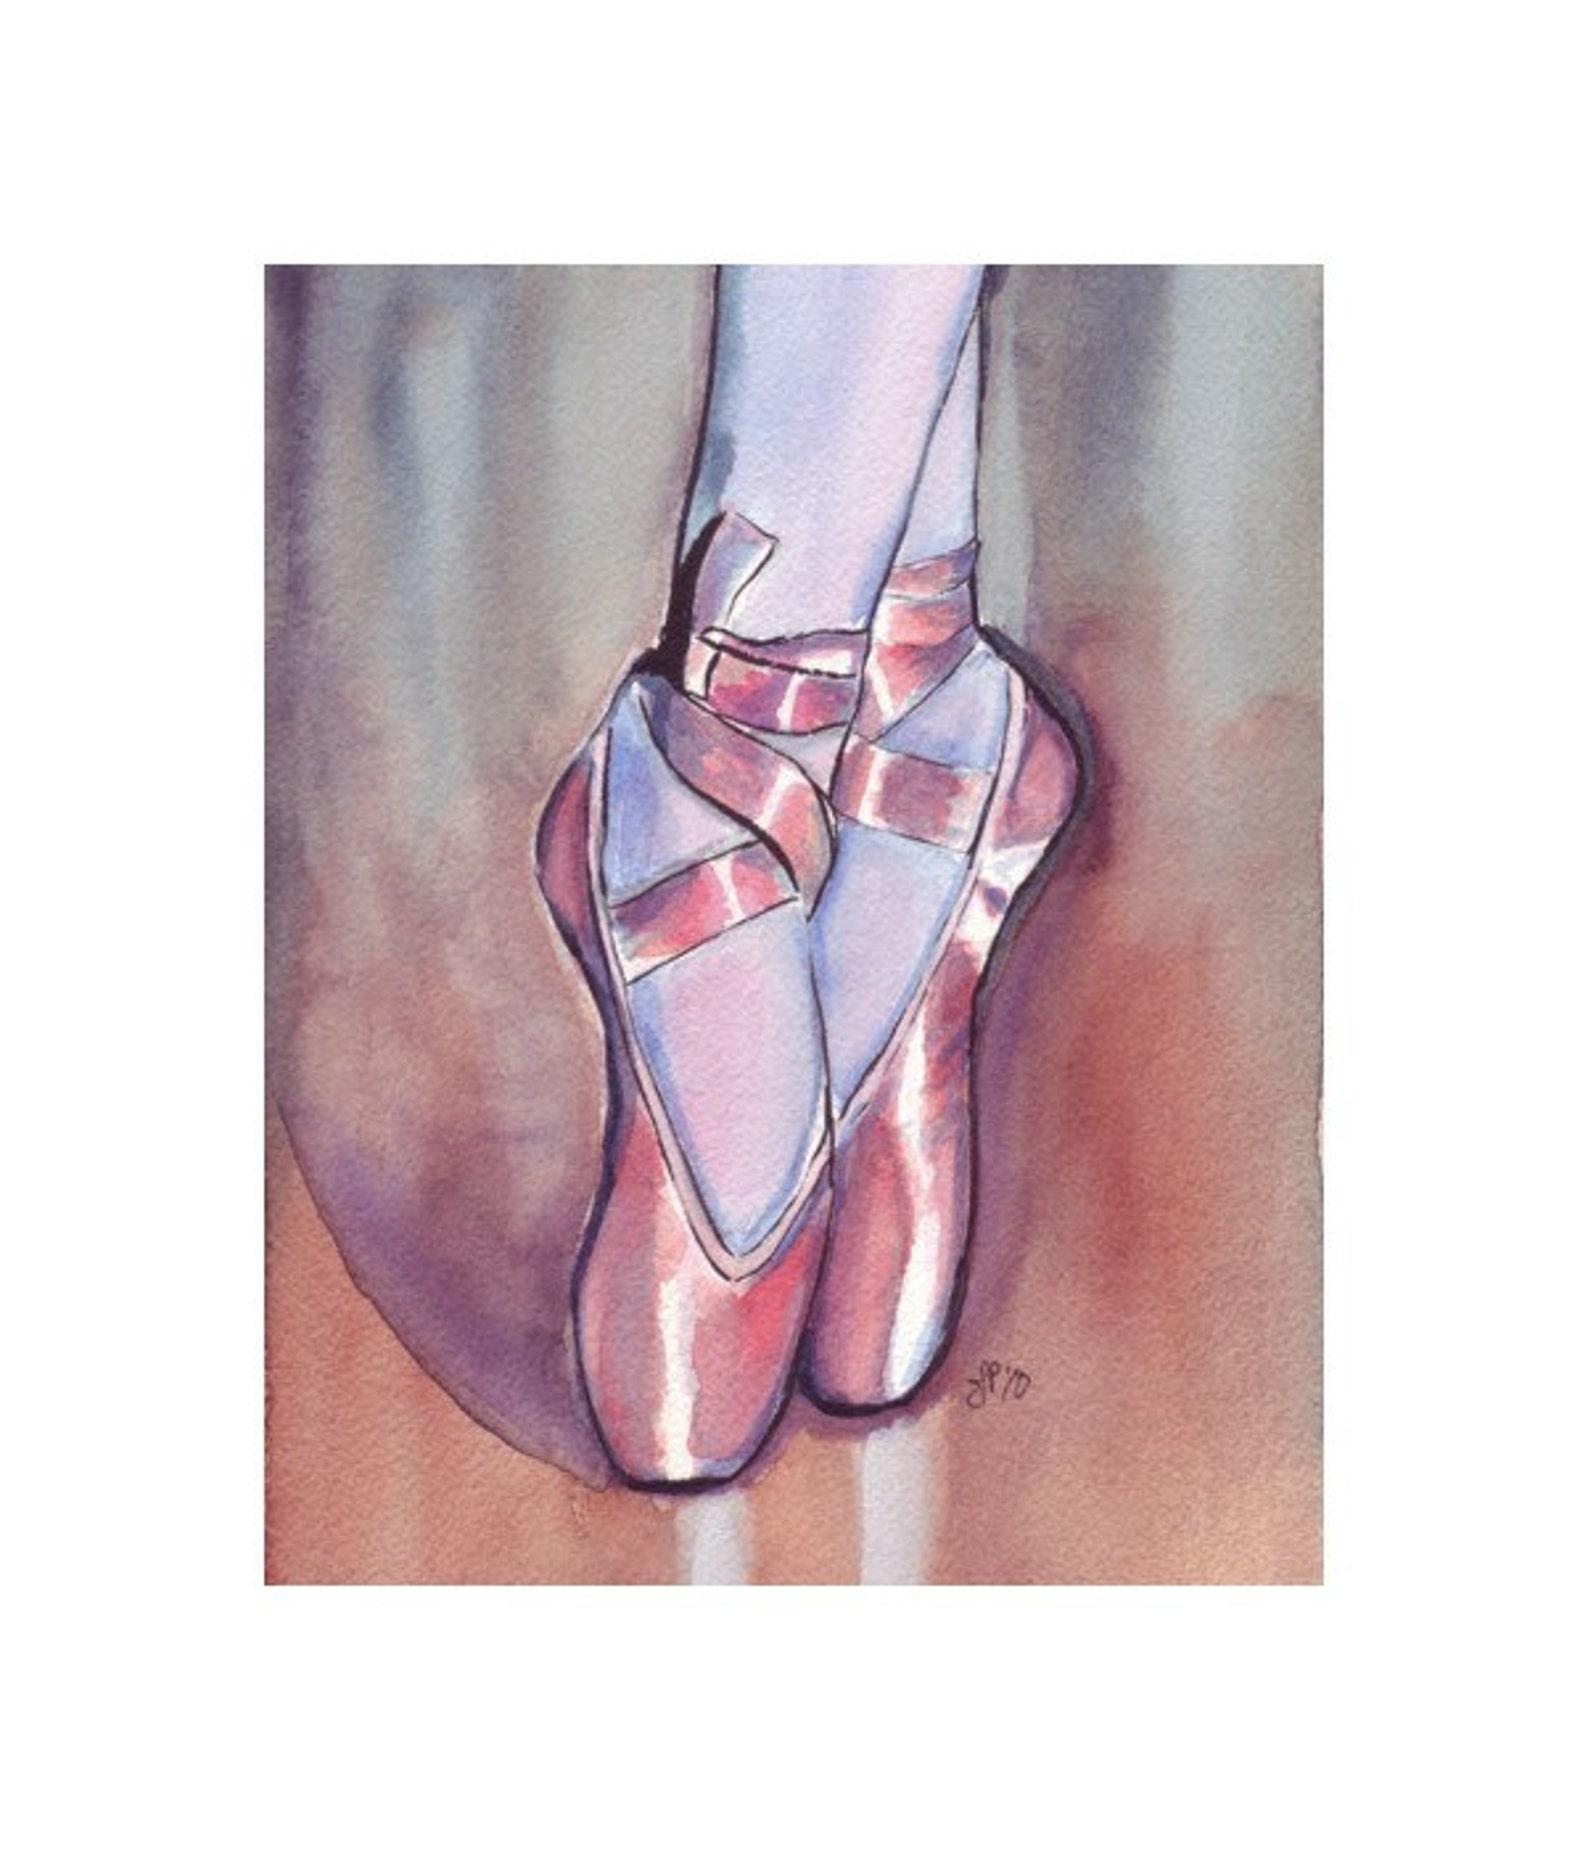 pink pointe shoes 11x14 watercolor painting - ballet art, pink ballet shoes watercolor art print, 11x14 wall art